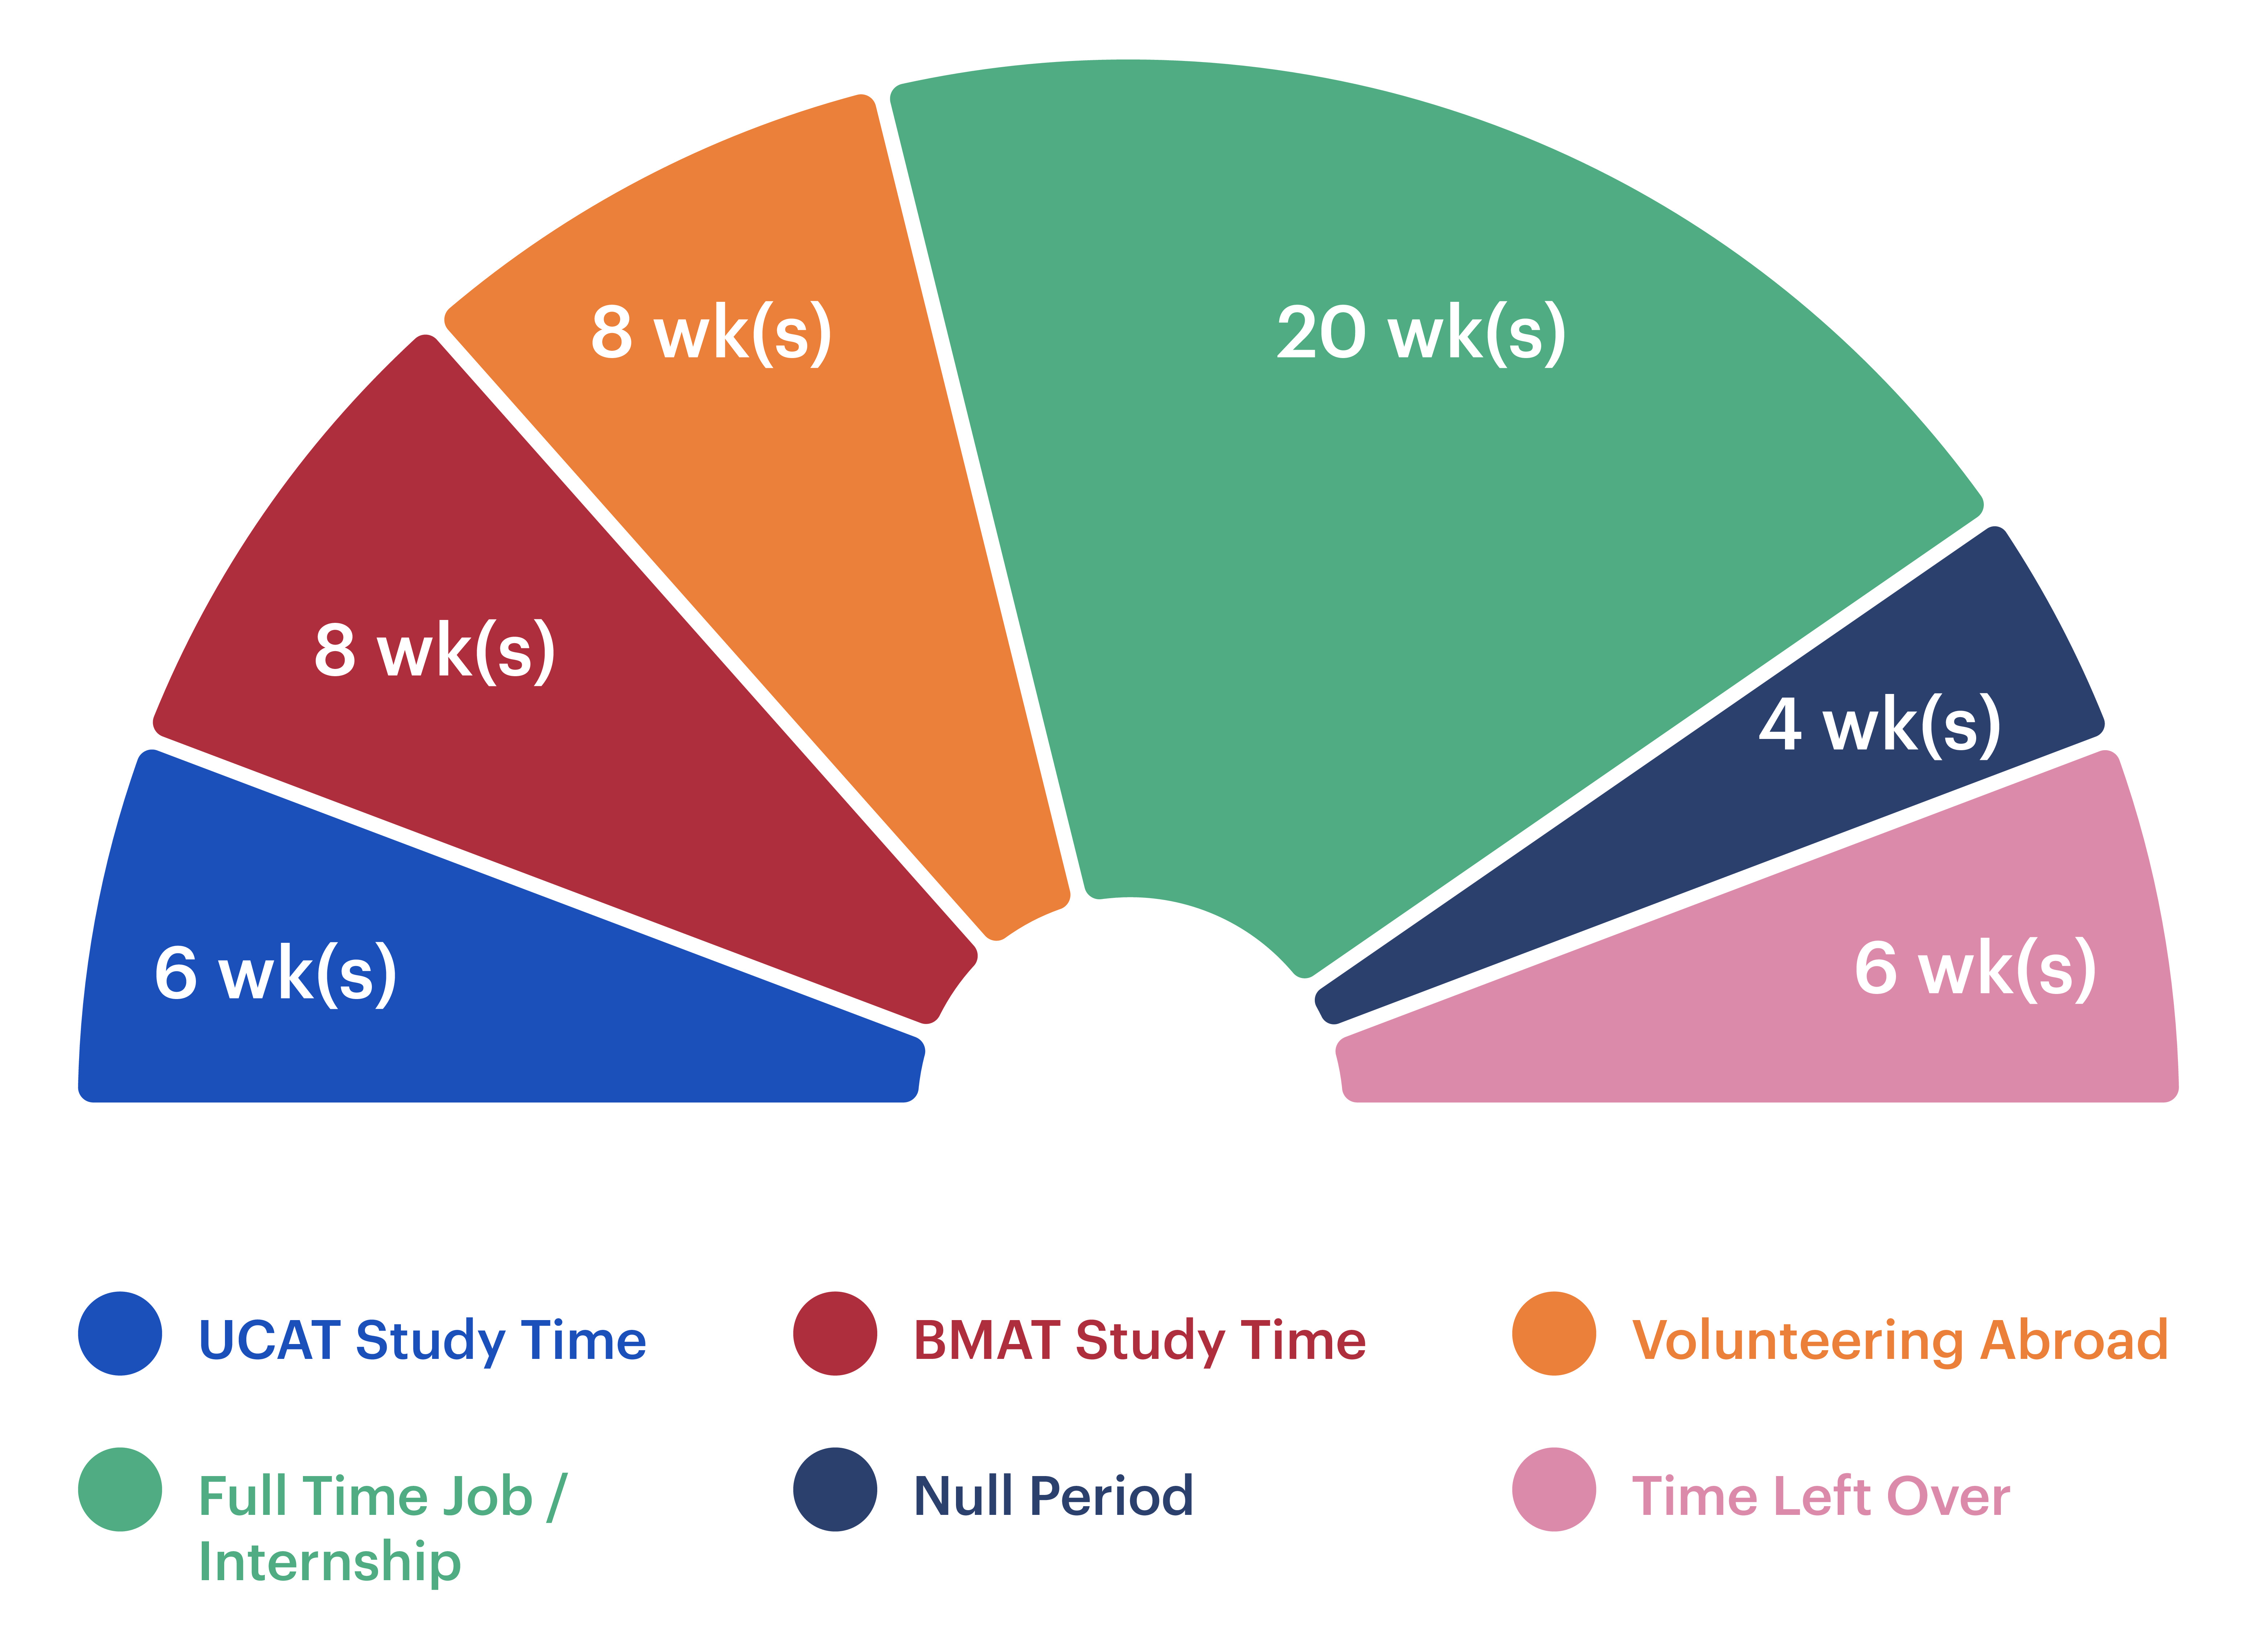 A hypothetical gap year timeline, including UCAT study time, BMAT study time, volunteering abroad, full time job/internship, null period and time left over.